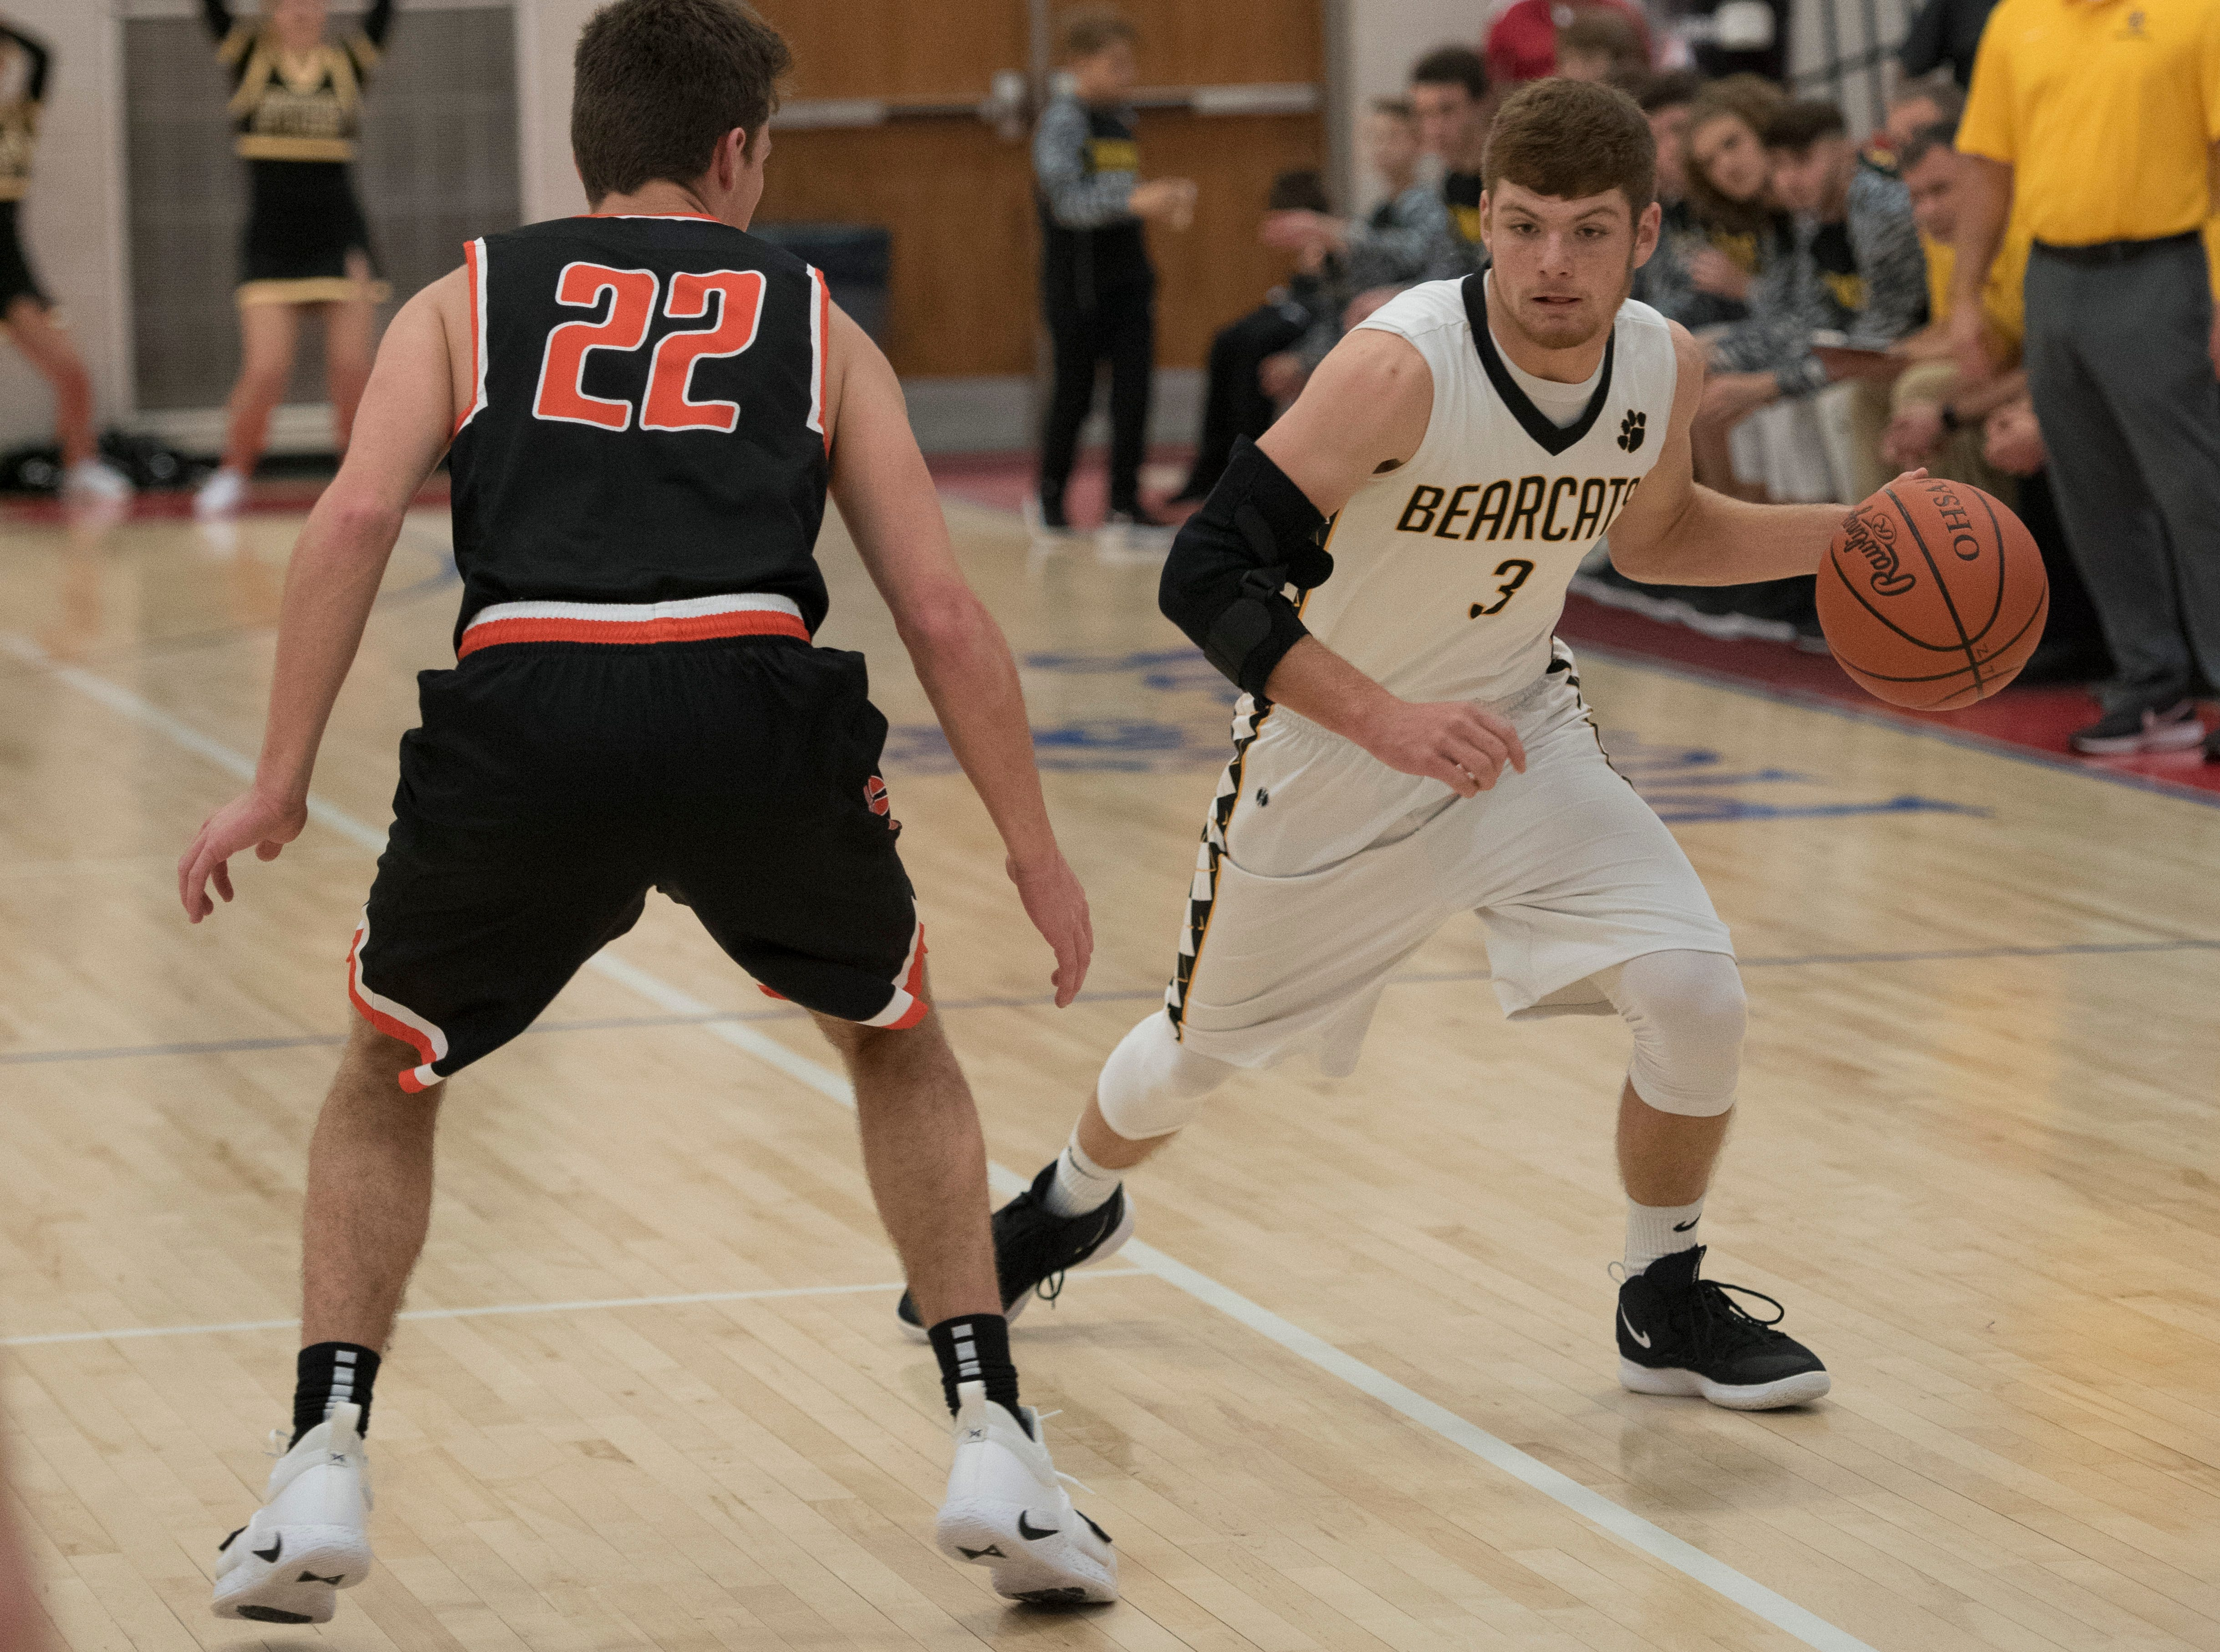 Amanda Clearcreek defeated Paint Valley 76-43 during the Zane Trace Tip-Off Classic at Zane Trace High School on Saturday, December 1, 2018.